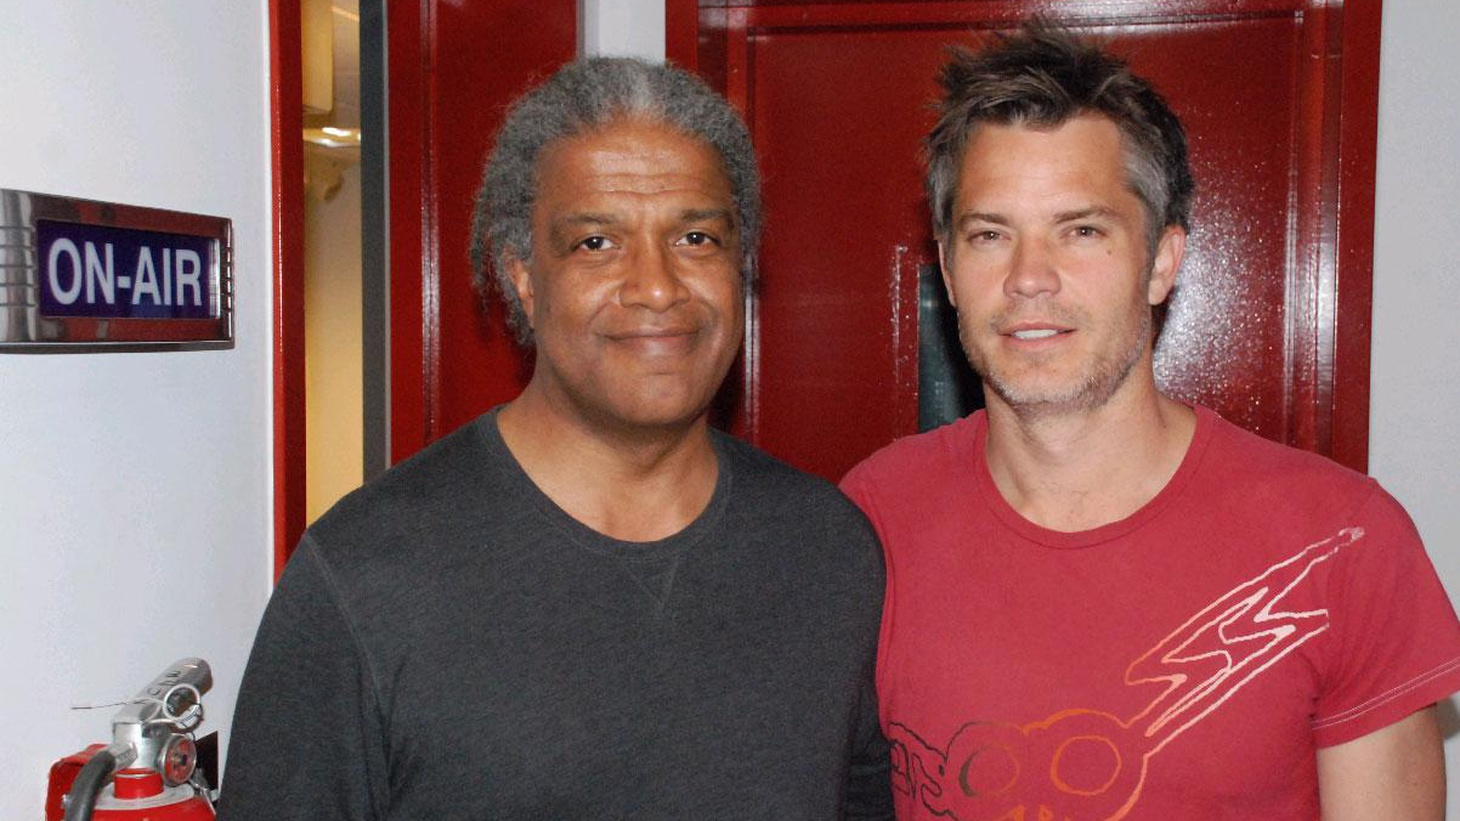 Actor Timothy Olyphant is unique. He's best known for western lawmen in the 21st century, first in HBO's Deadwood, and now in Justified on FX. He discusses bringing them to life in this new world.